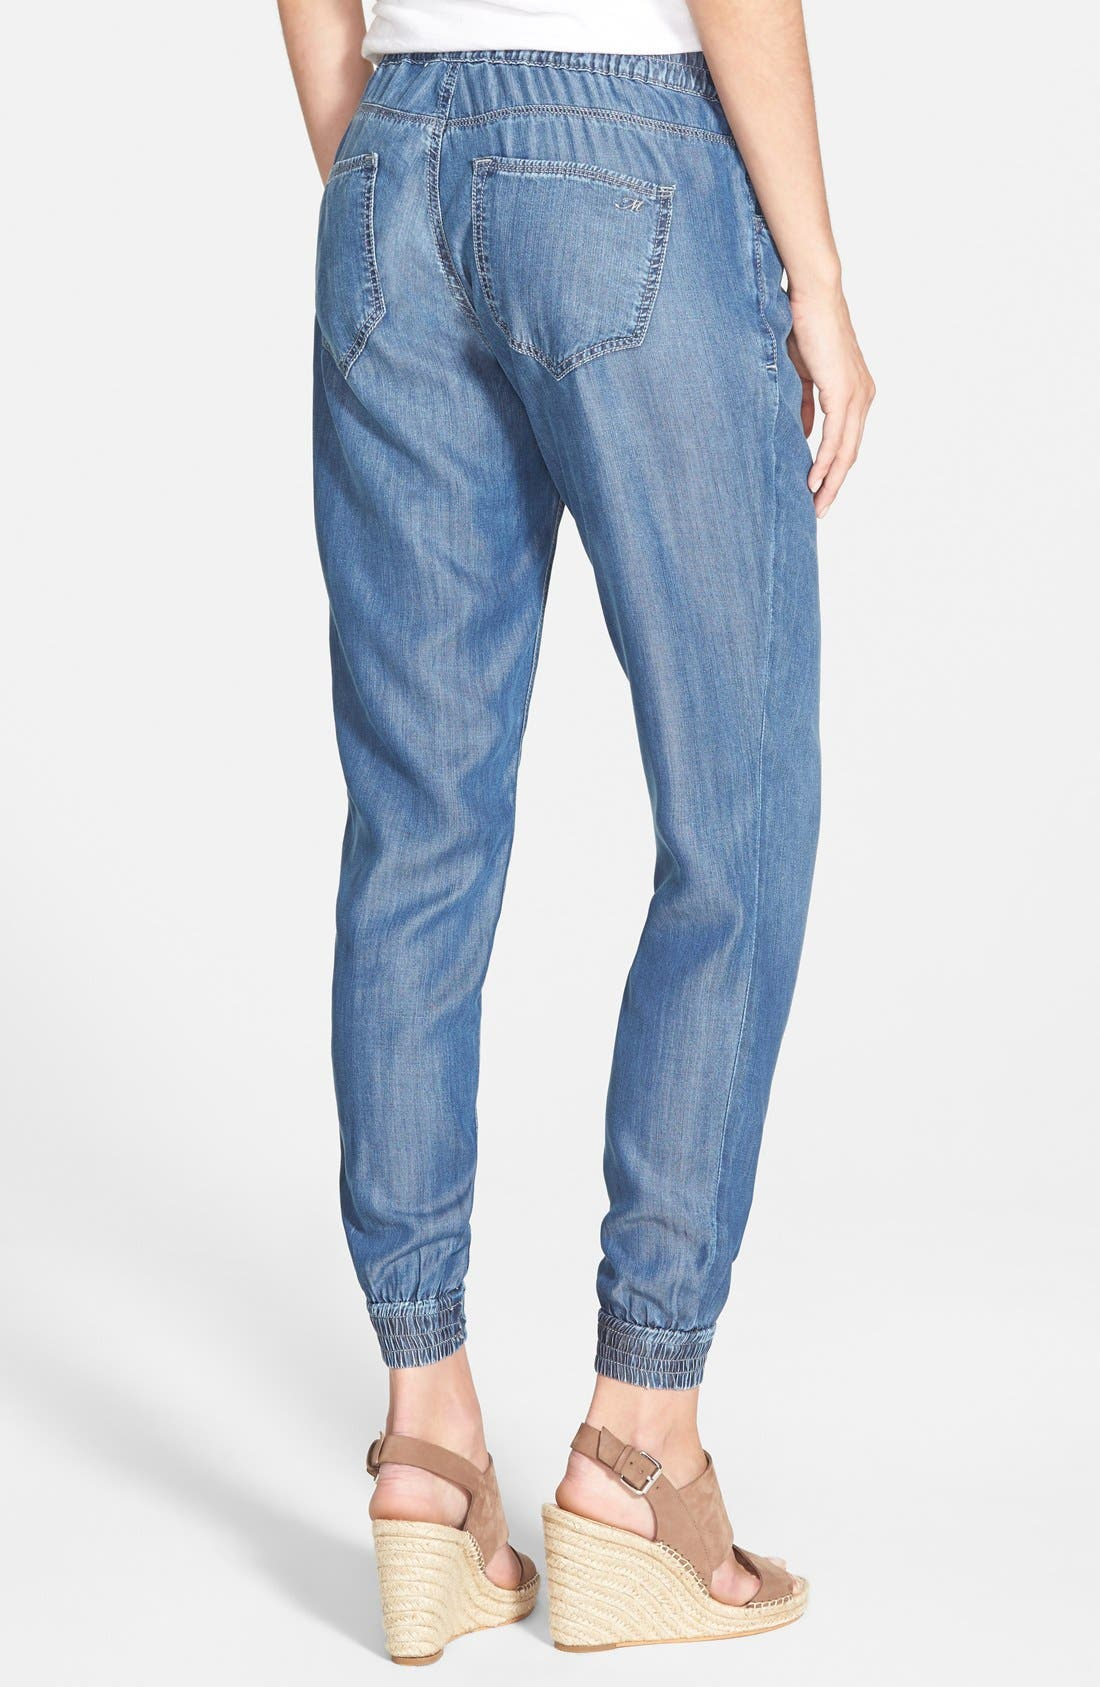 'Aubrey' Drawstring Denim Pants,                             Alternate thumbnail 2, color,                             420